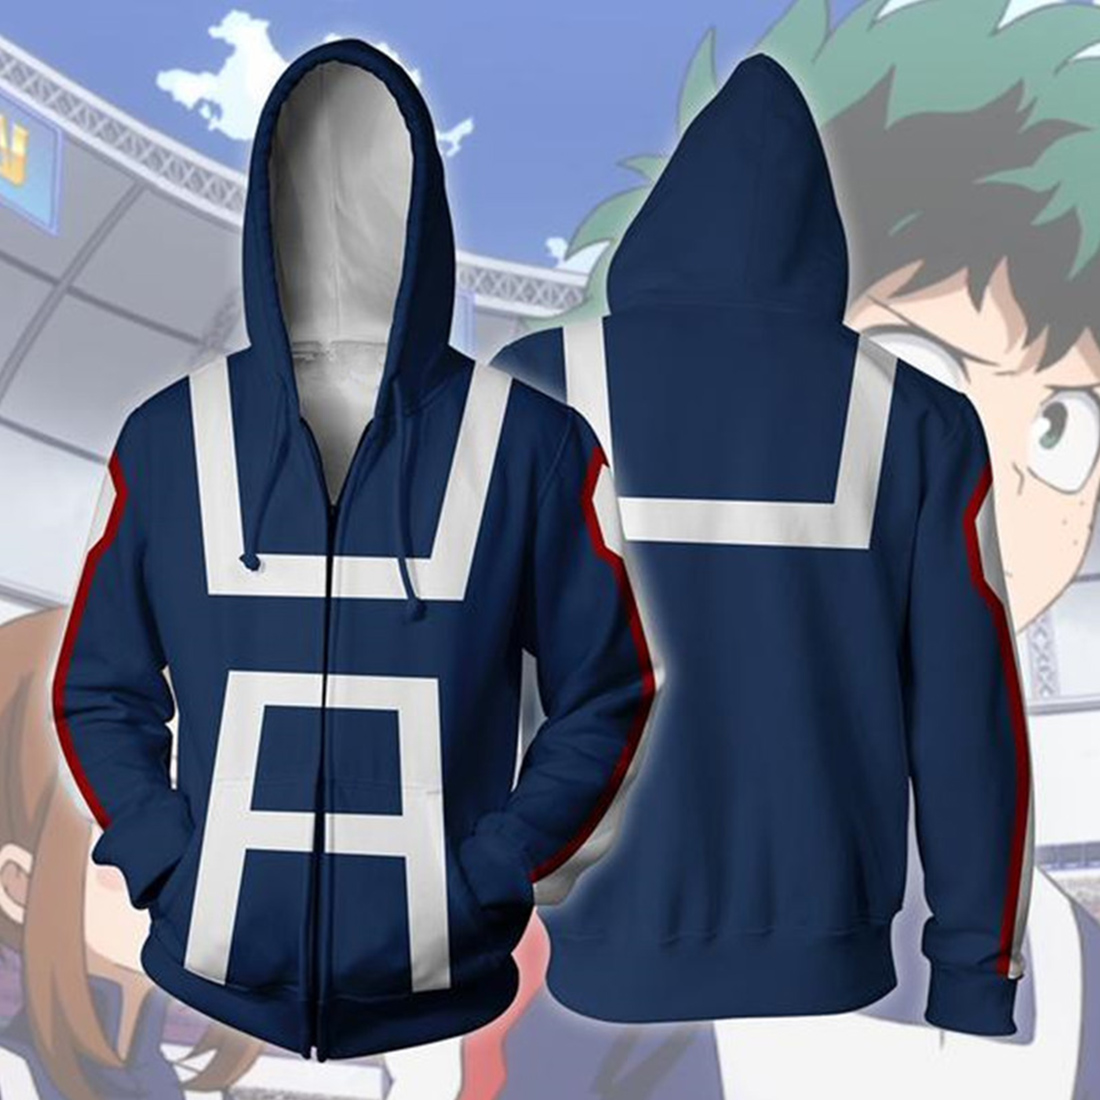 New 2019 3D My Hero Academia Hoodies Men Fashion Casual Anime Men Hoodie Cosplay Costume Sweatshirt Streetwear Zipper Top Jacket